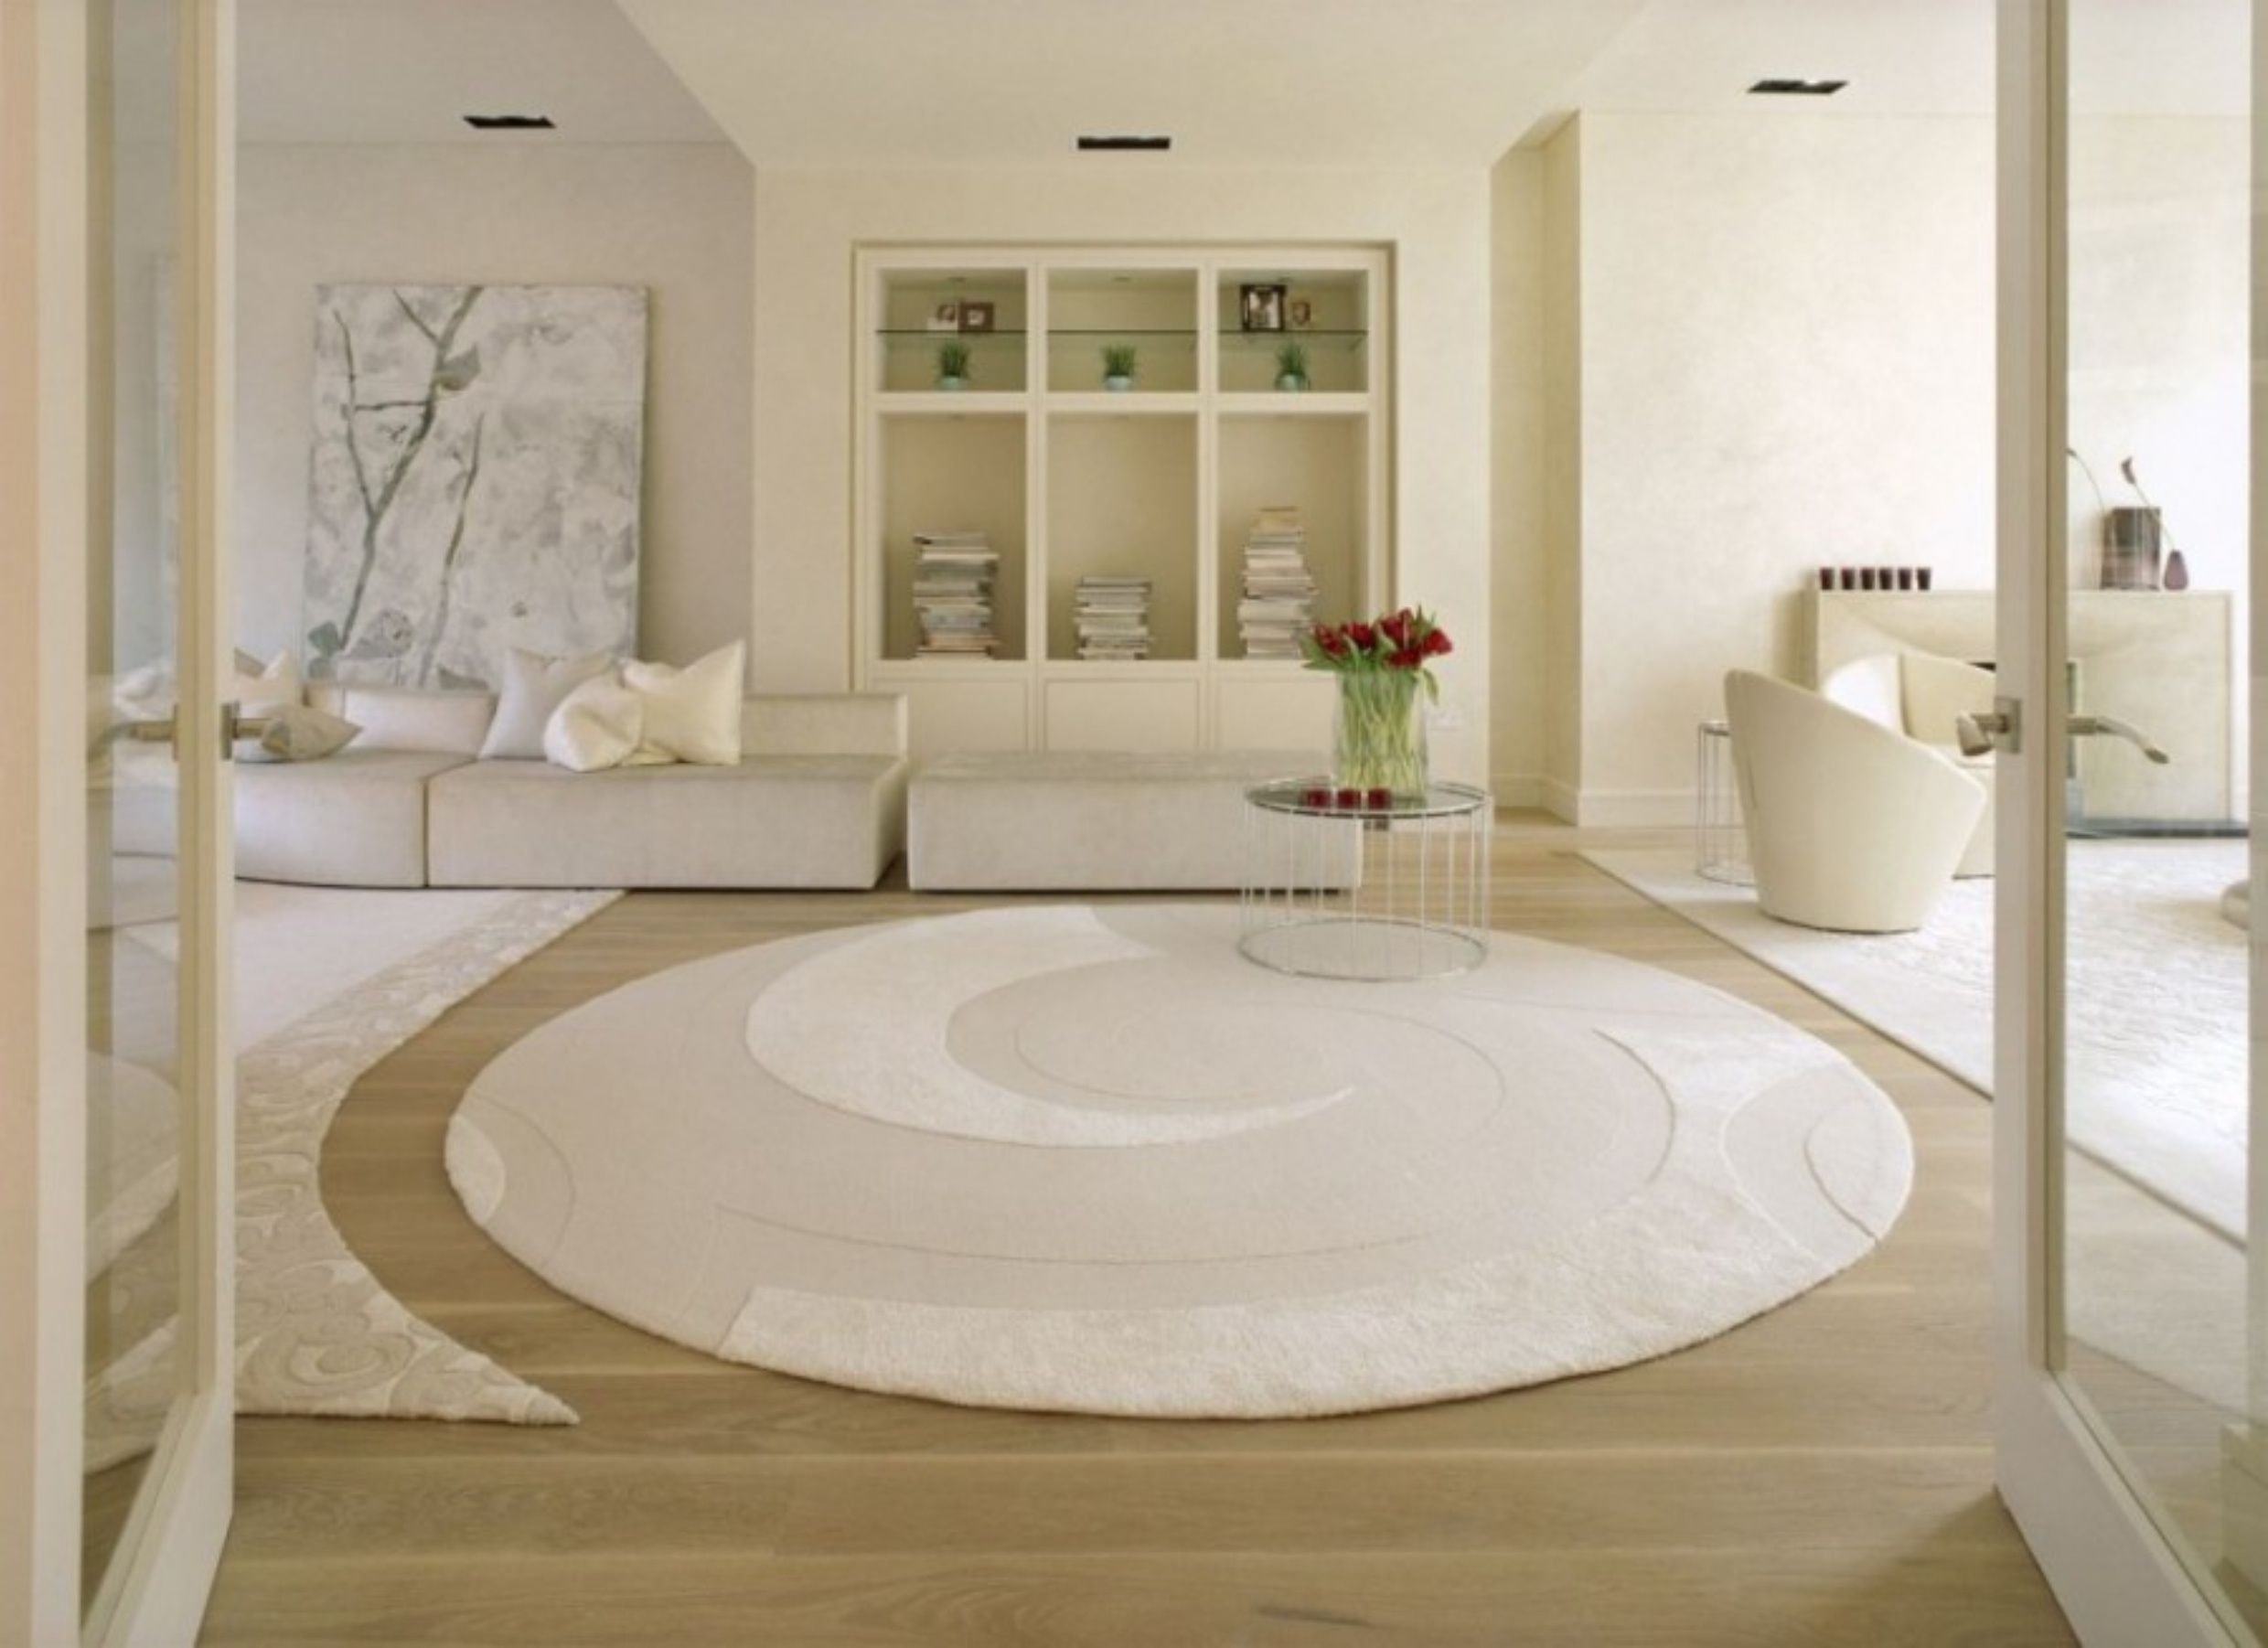 White Round Extra Large Bathroom Rug Large Bathroom Rugs - High quality bathroom rugs for bathroom decorating ideas